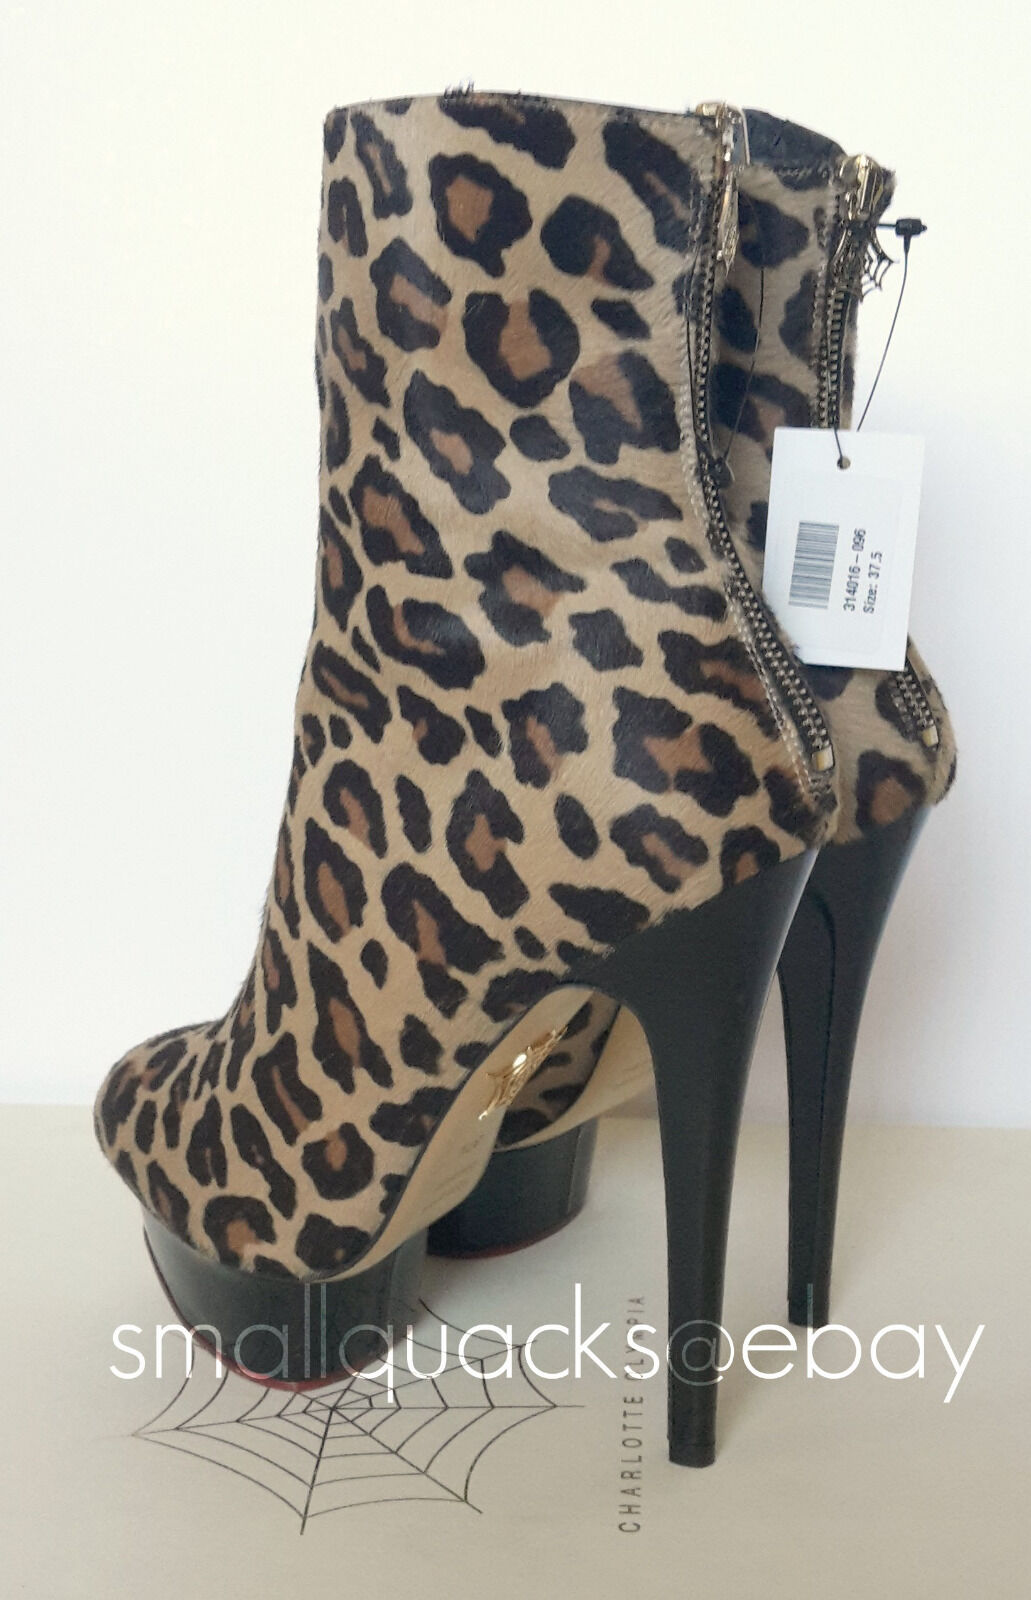 BNIB CHARLOTTE OLYMPIA Lucinda Leopard Print Pony Hair Calf Hair Pony leather Ankle Stiefel df8762